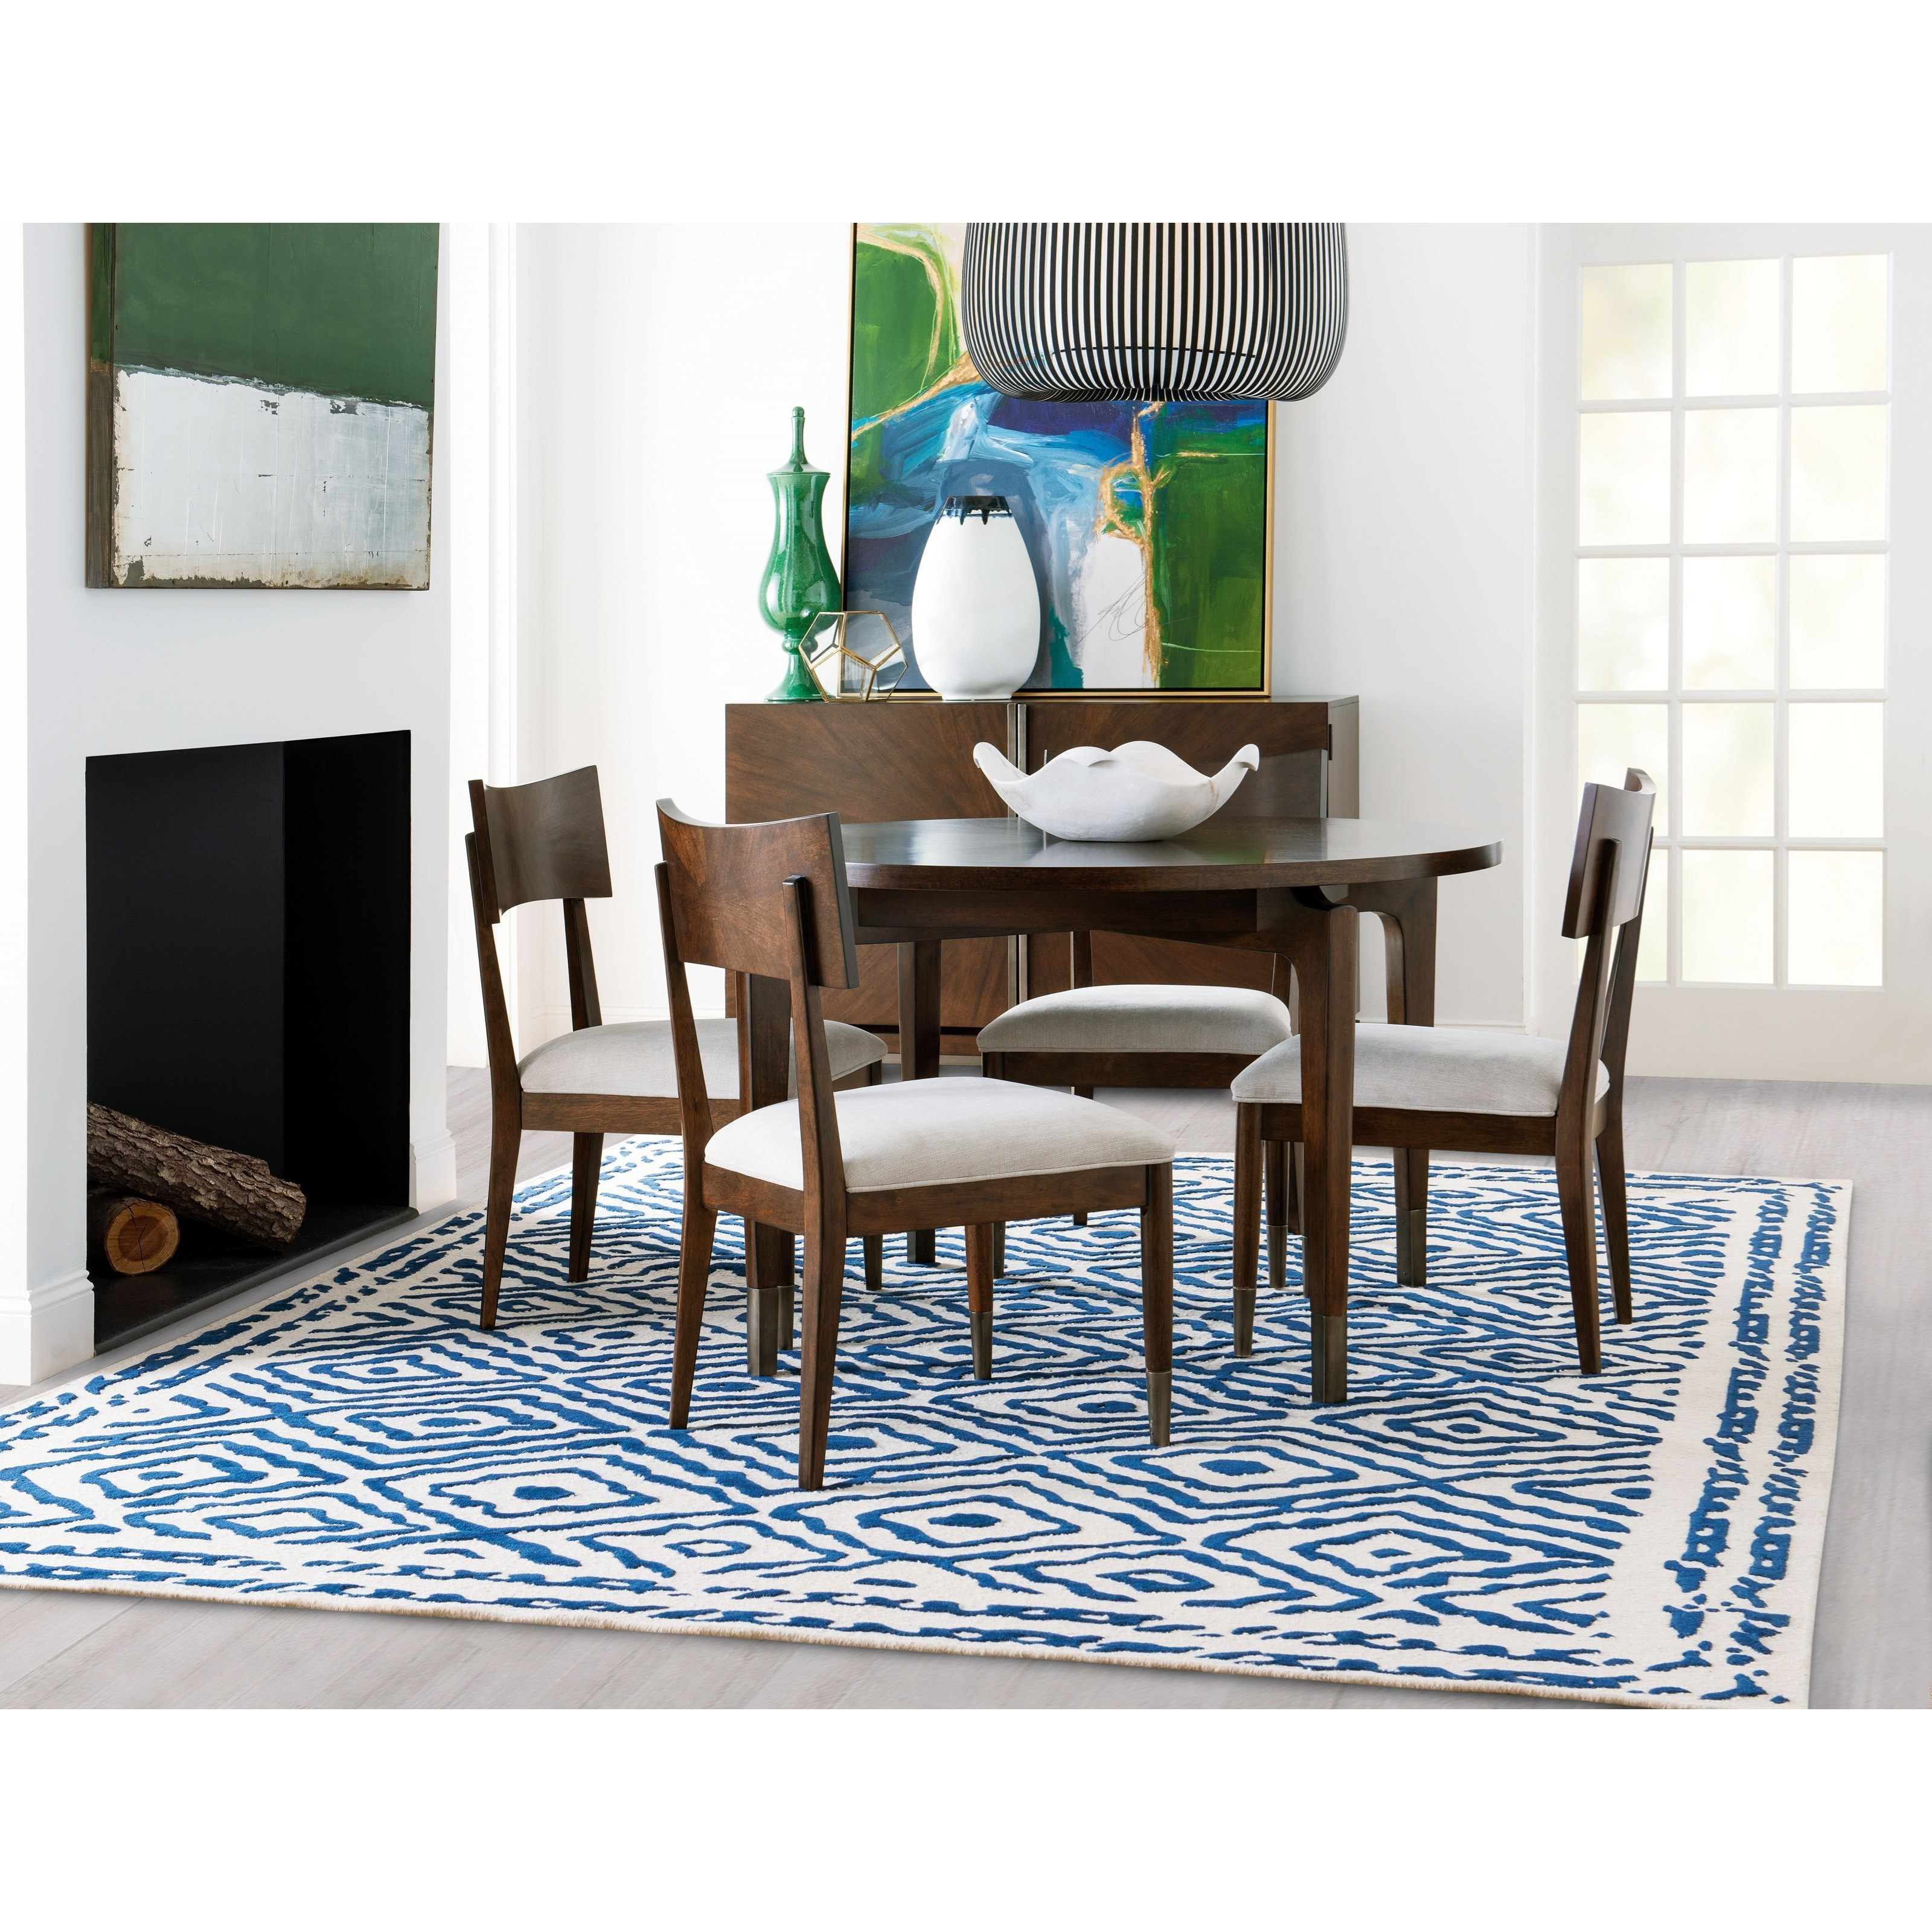 Savoy Dining Room Group by Legacy Classic at Stoney Creek Furniture